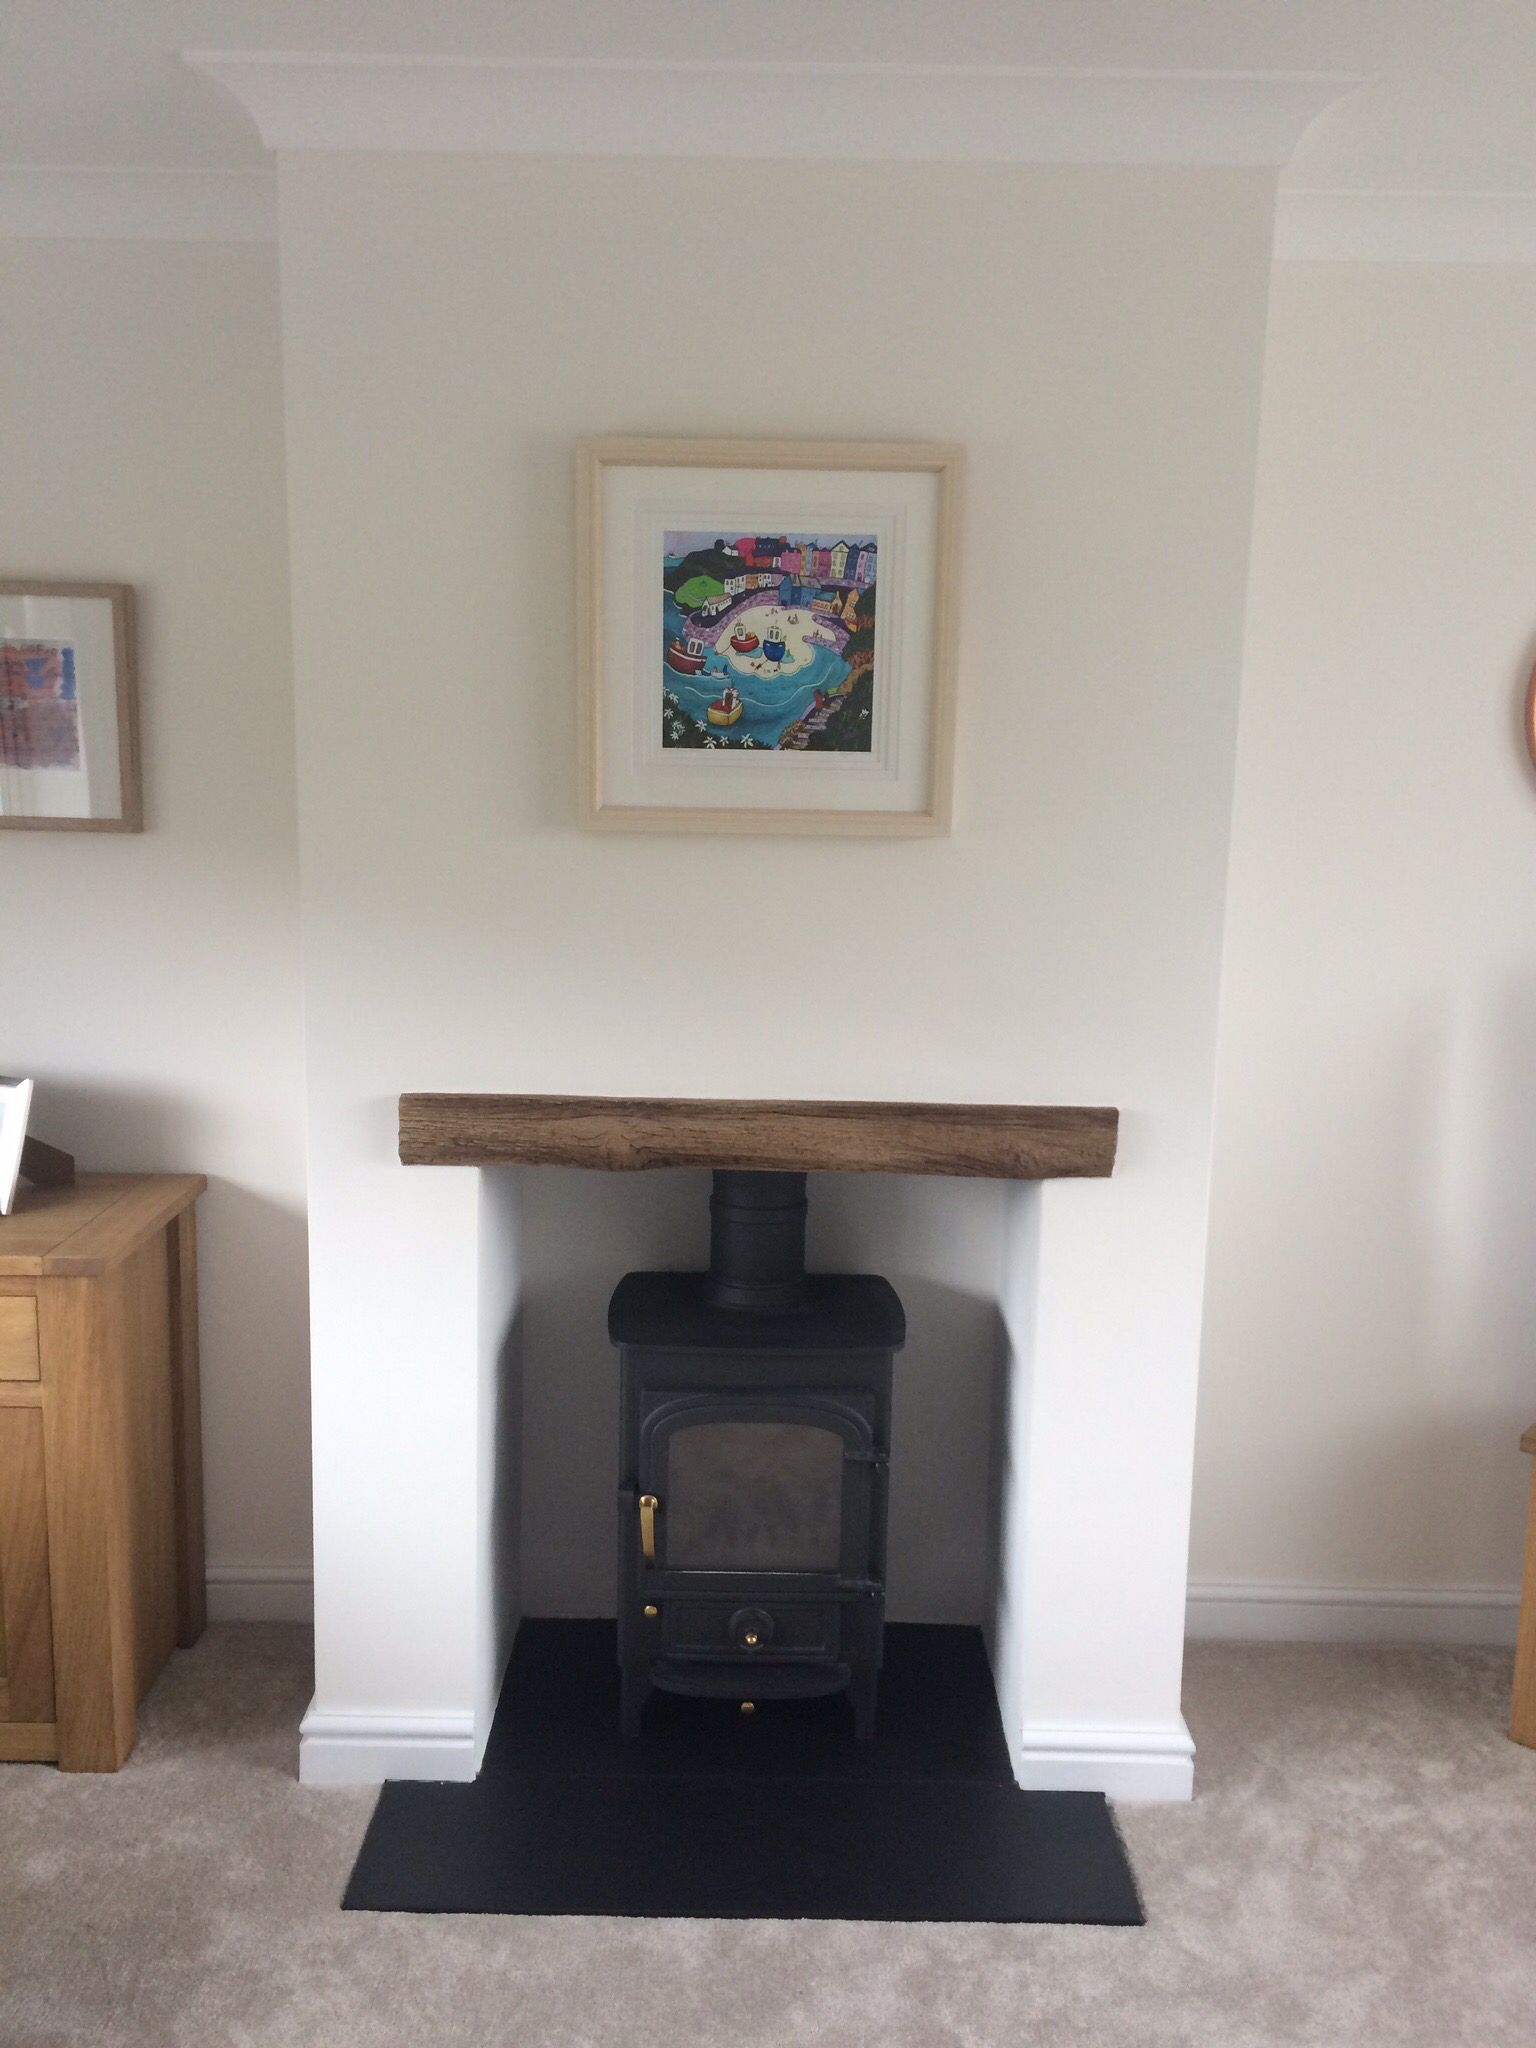 Decorating Ideas For Small Living Room With Fireplace And On Opposite Walls Chimney Breast